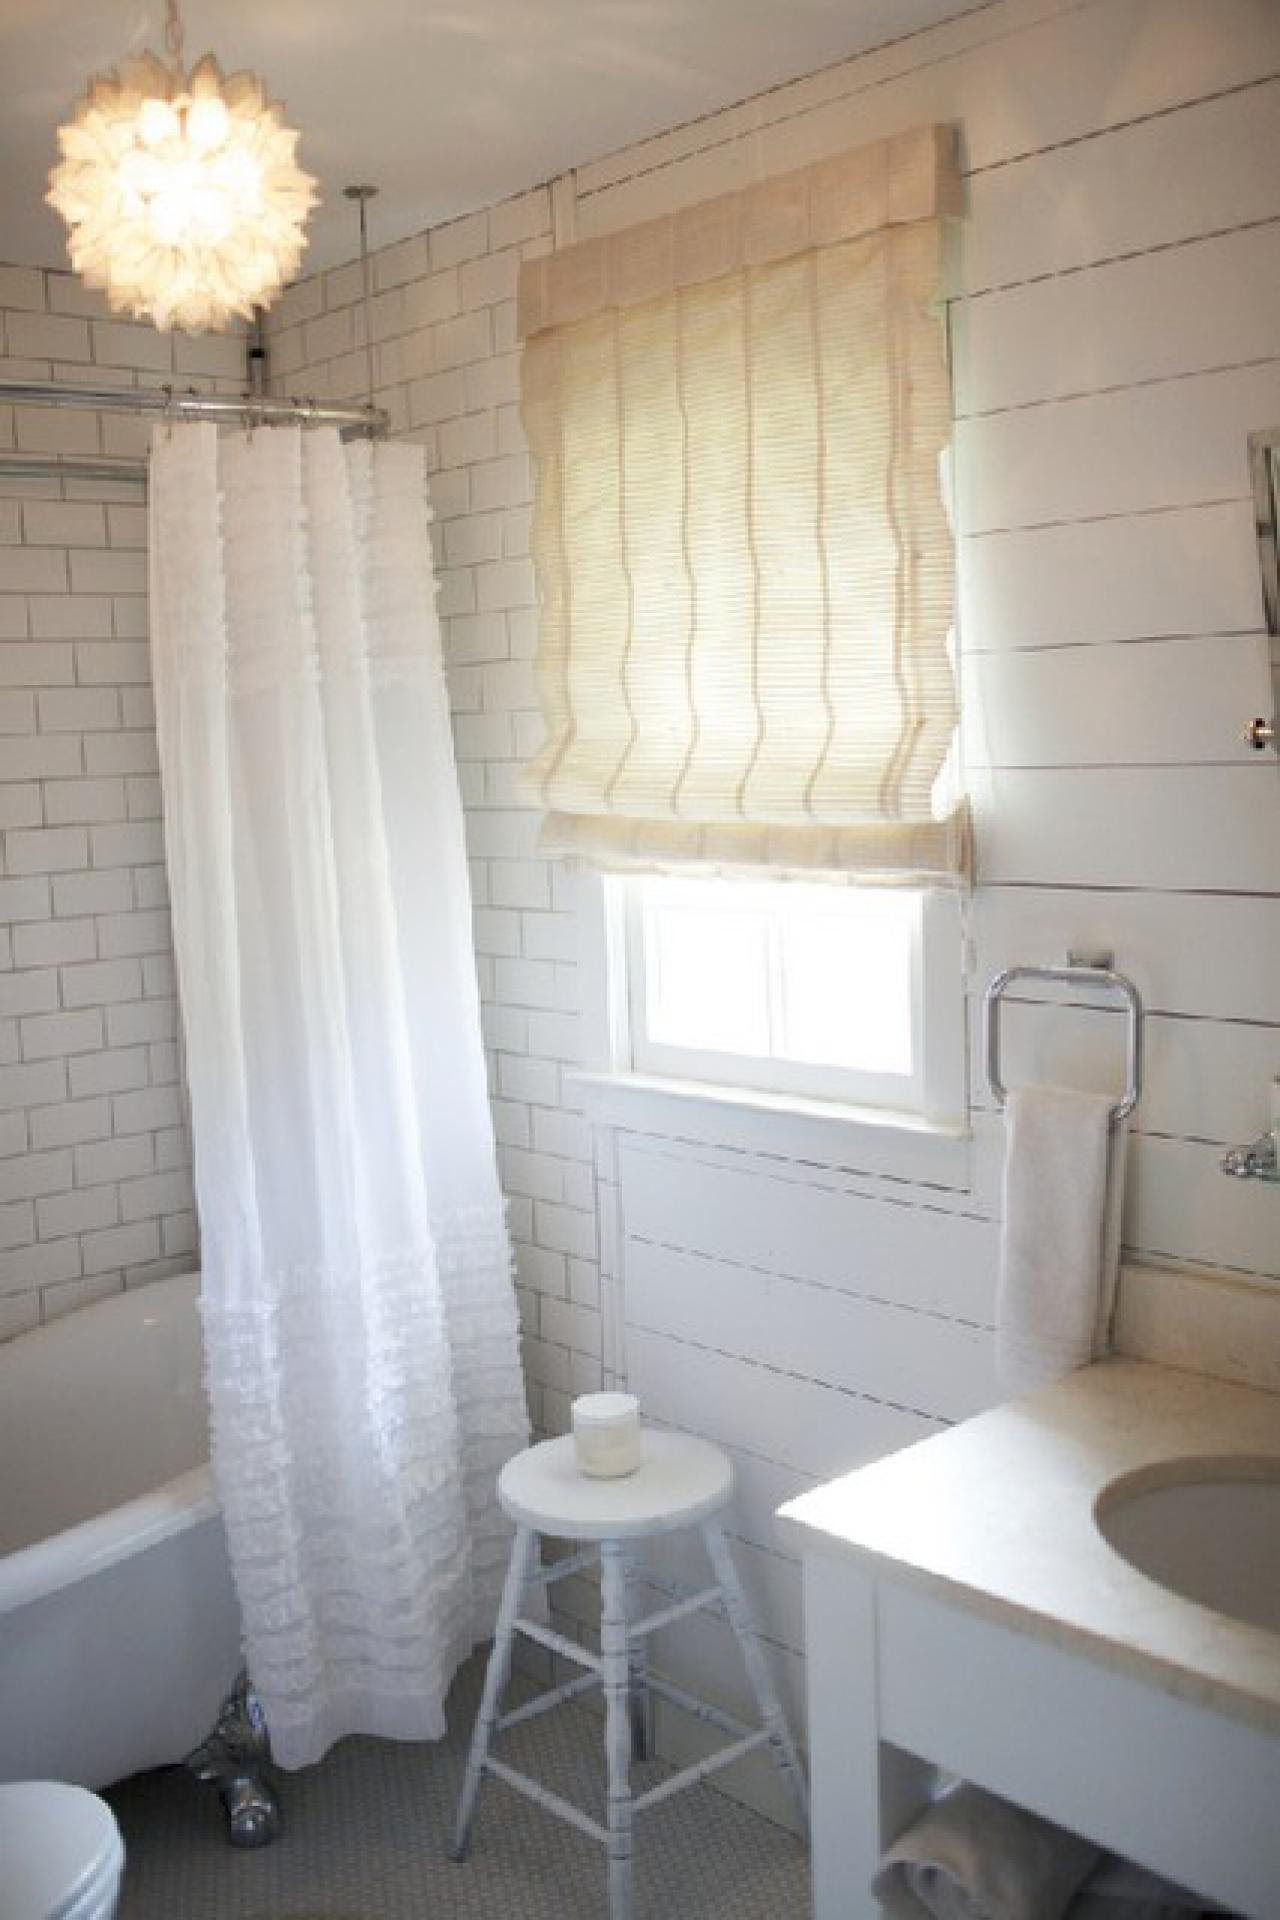 30 great ideas and pictures for bathroom tile gallery ...